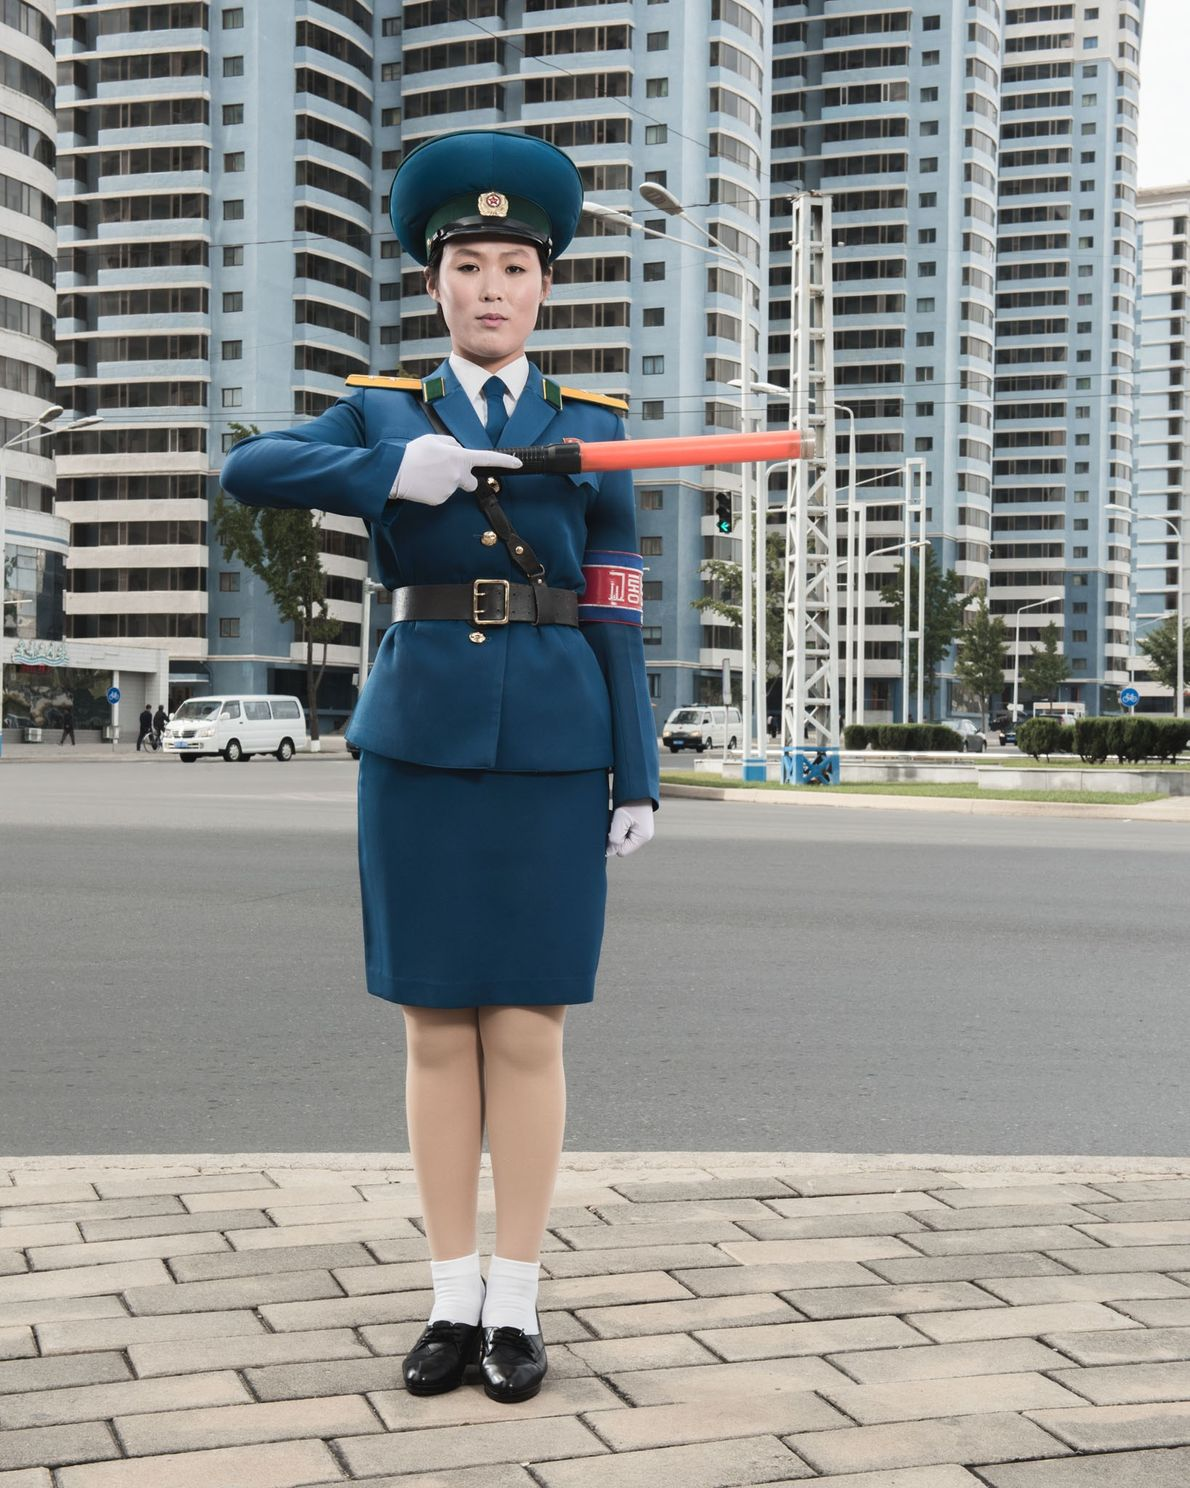 Female traffic officers like O Yong Ae are a common sight on the streets of Pyongyang. ...